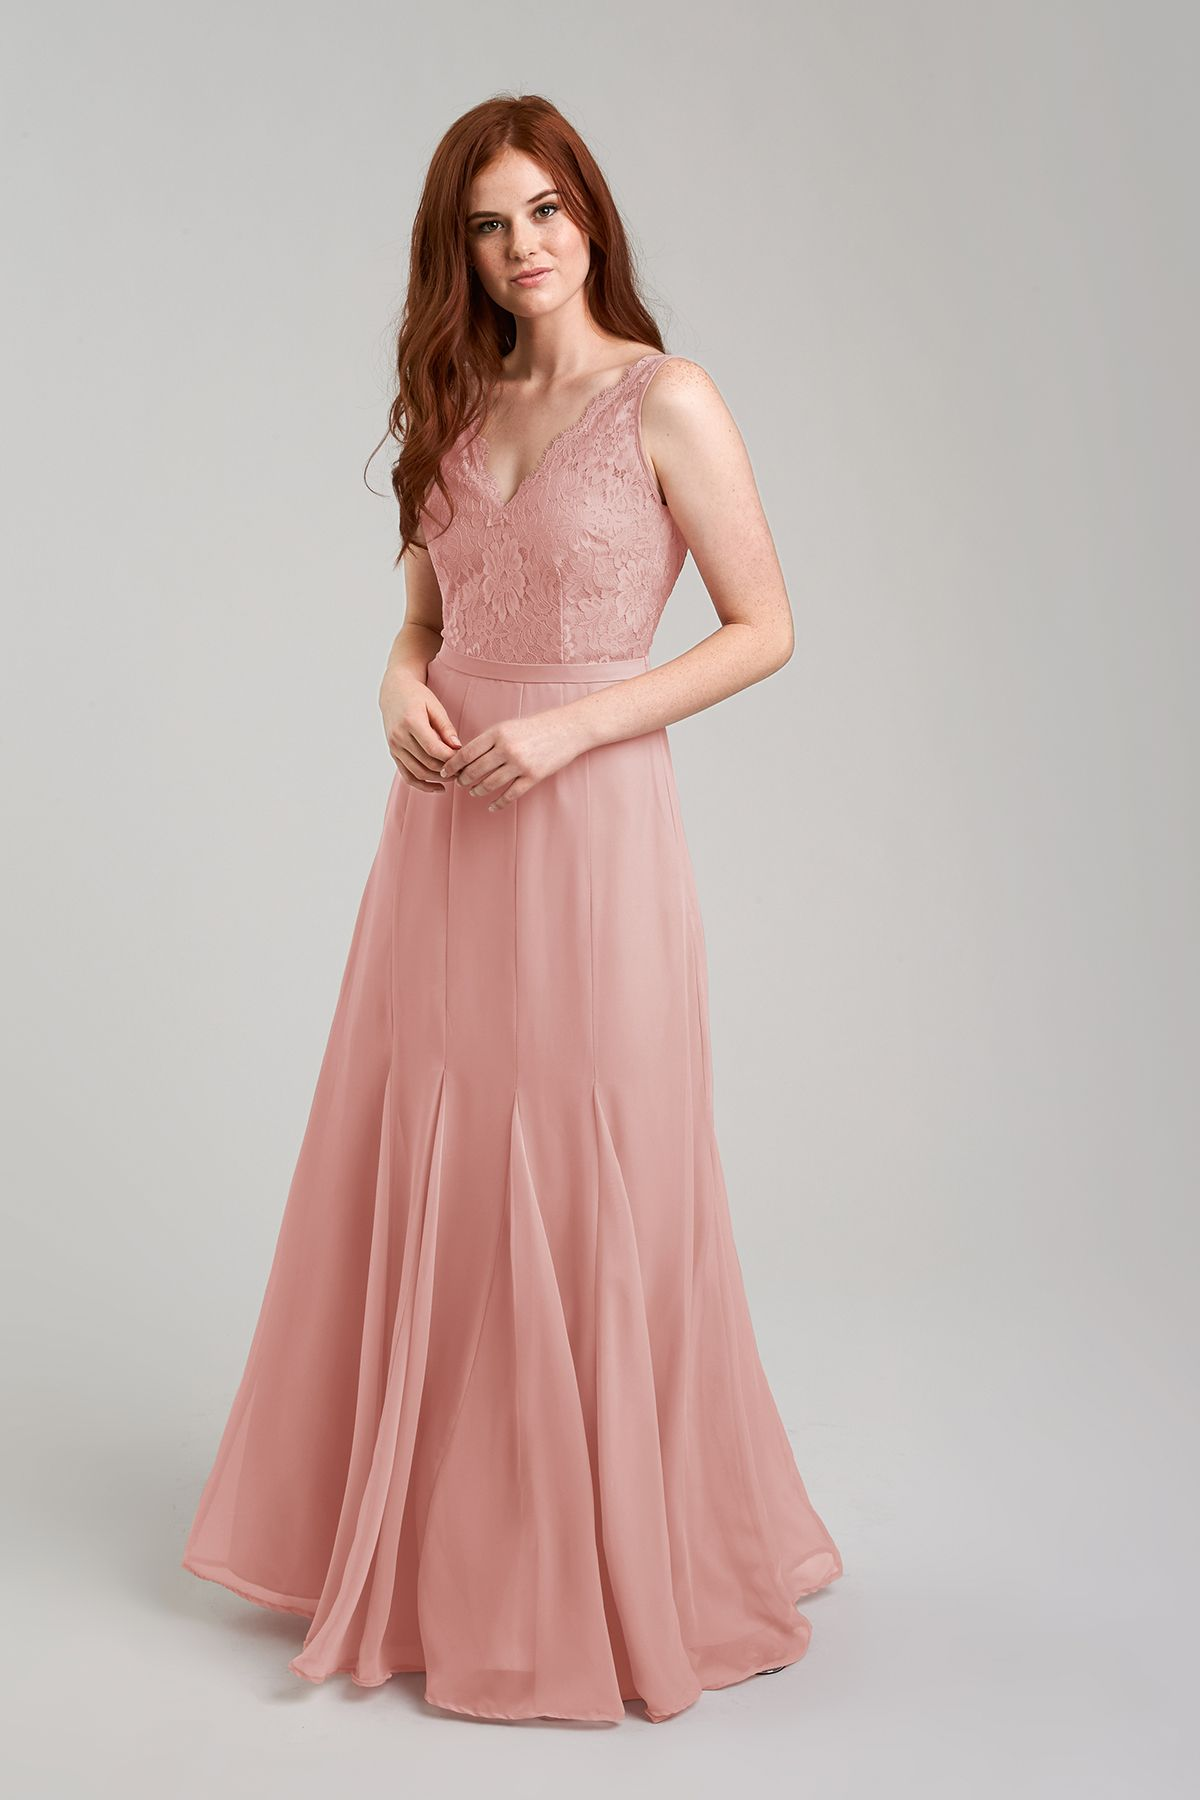 Rose colored wedding dress  Mila  Party fashion Dusty rose and Favorite color